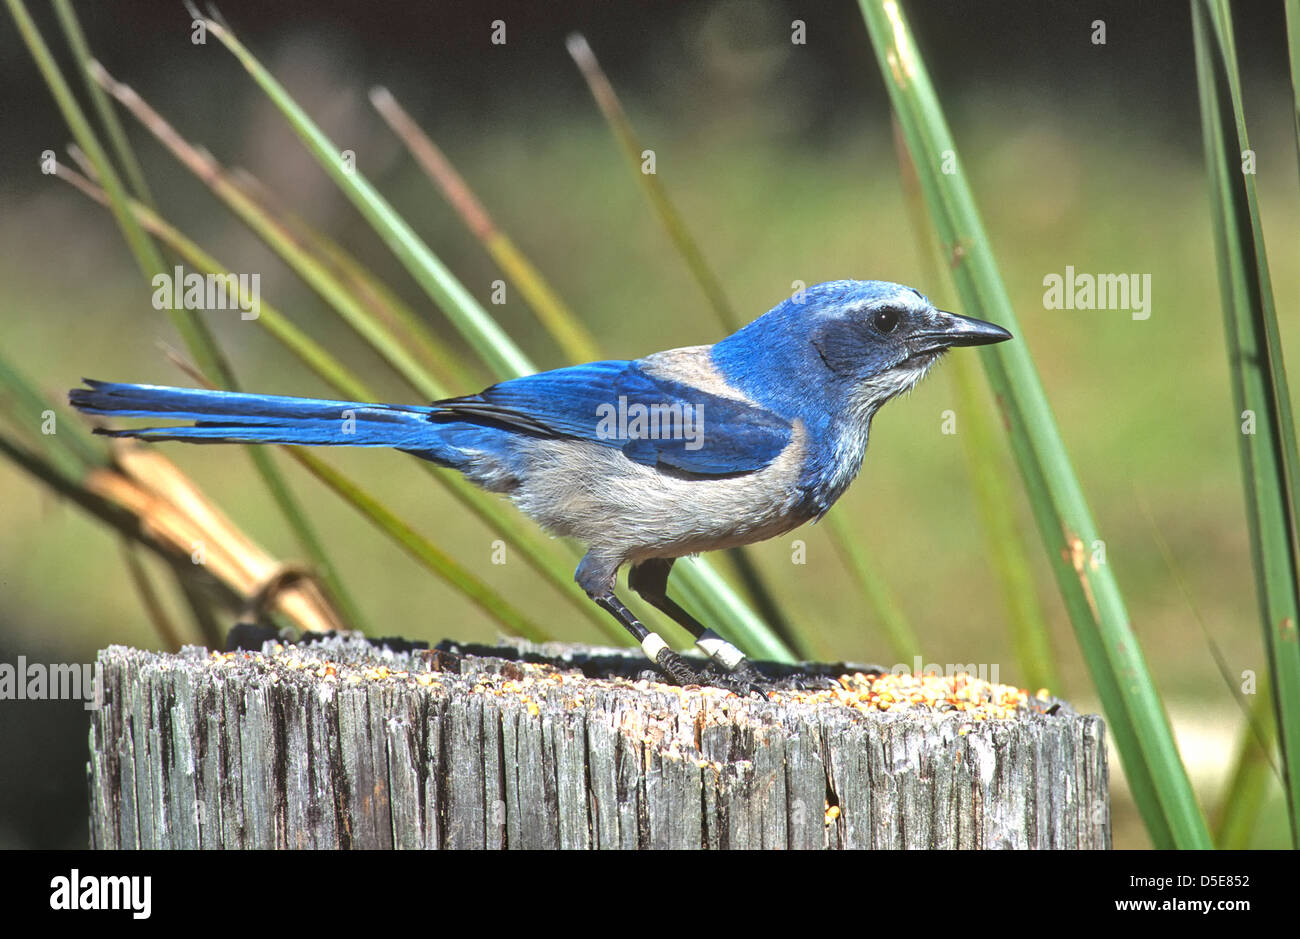 The Florida Scrub Jay (Aphelocoma coerulescens is one of the species of scrub jay native to North America. Stock Photo